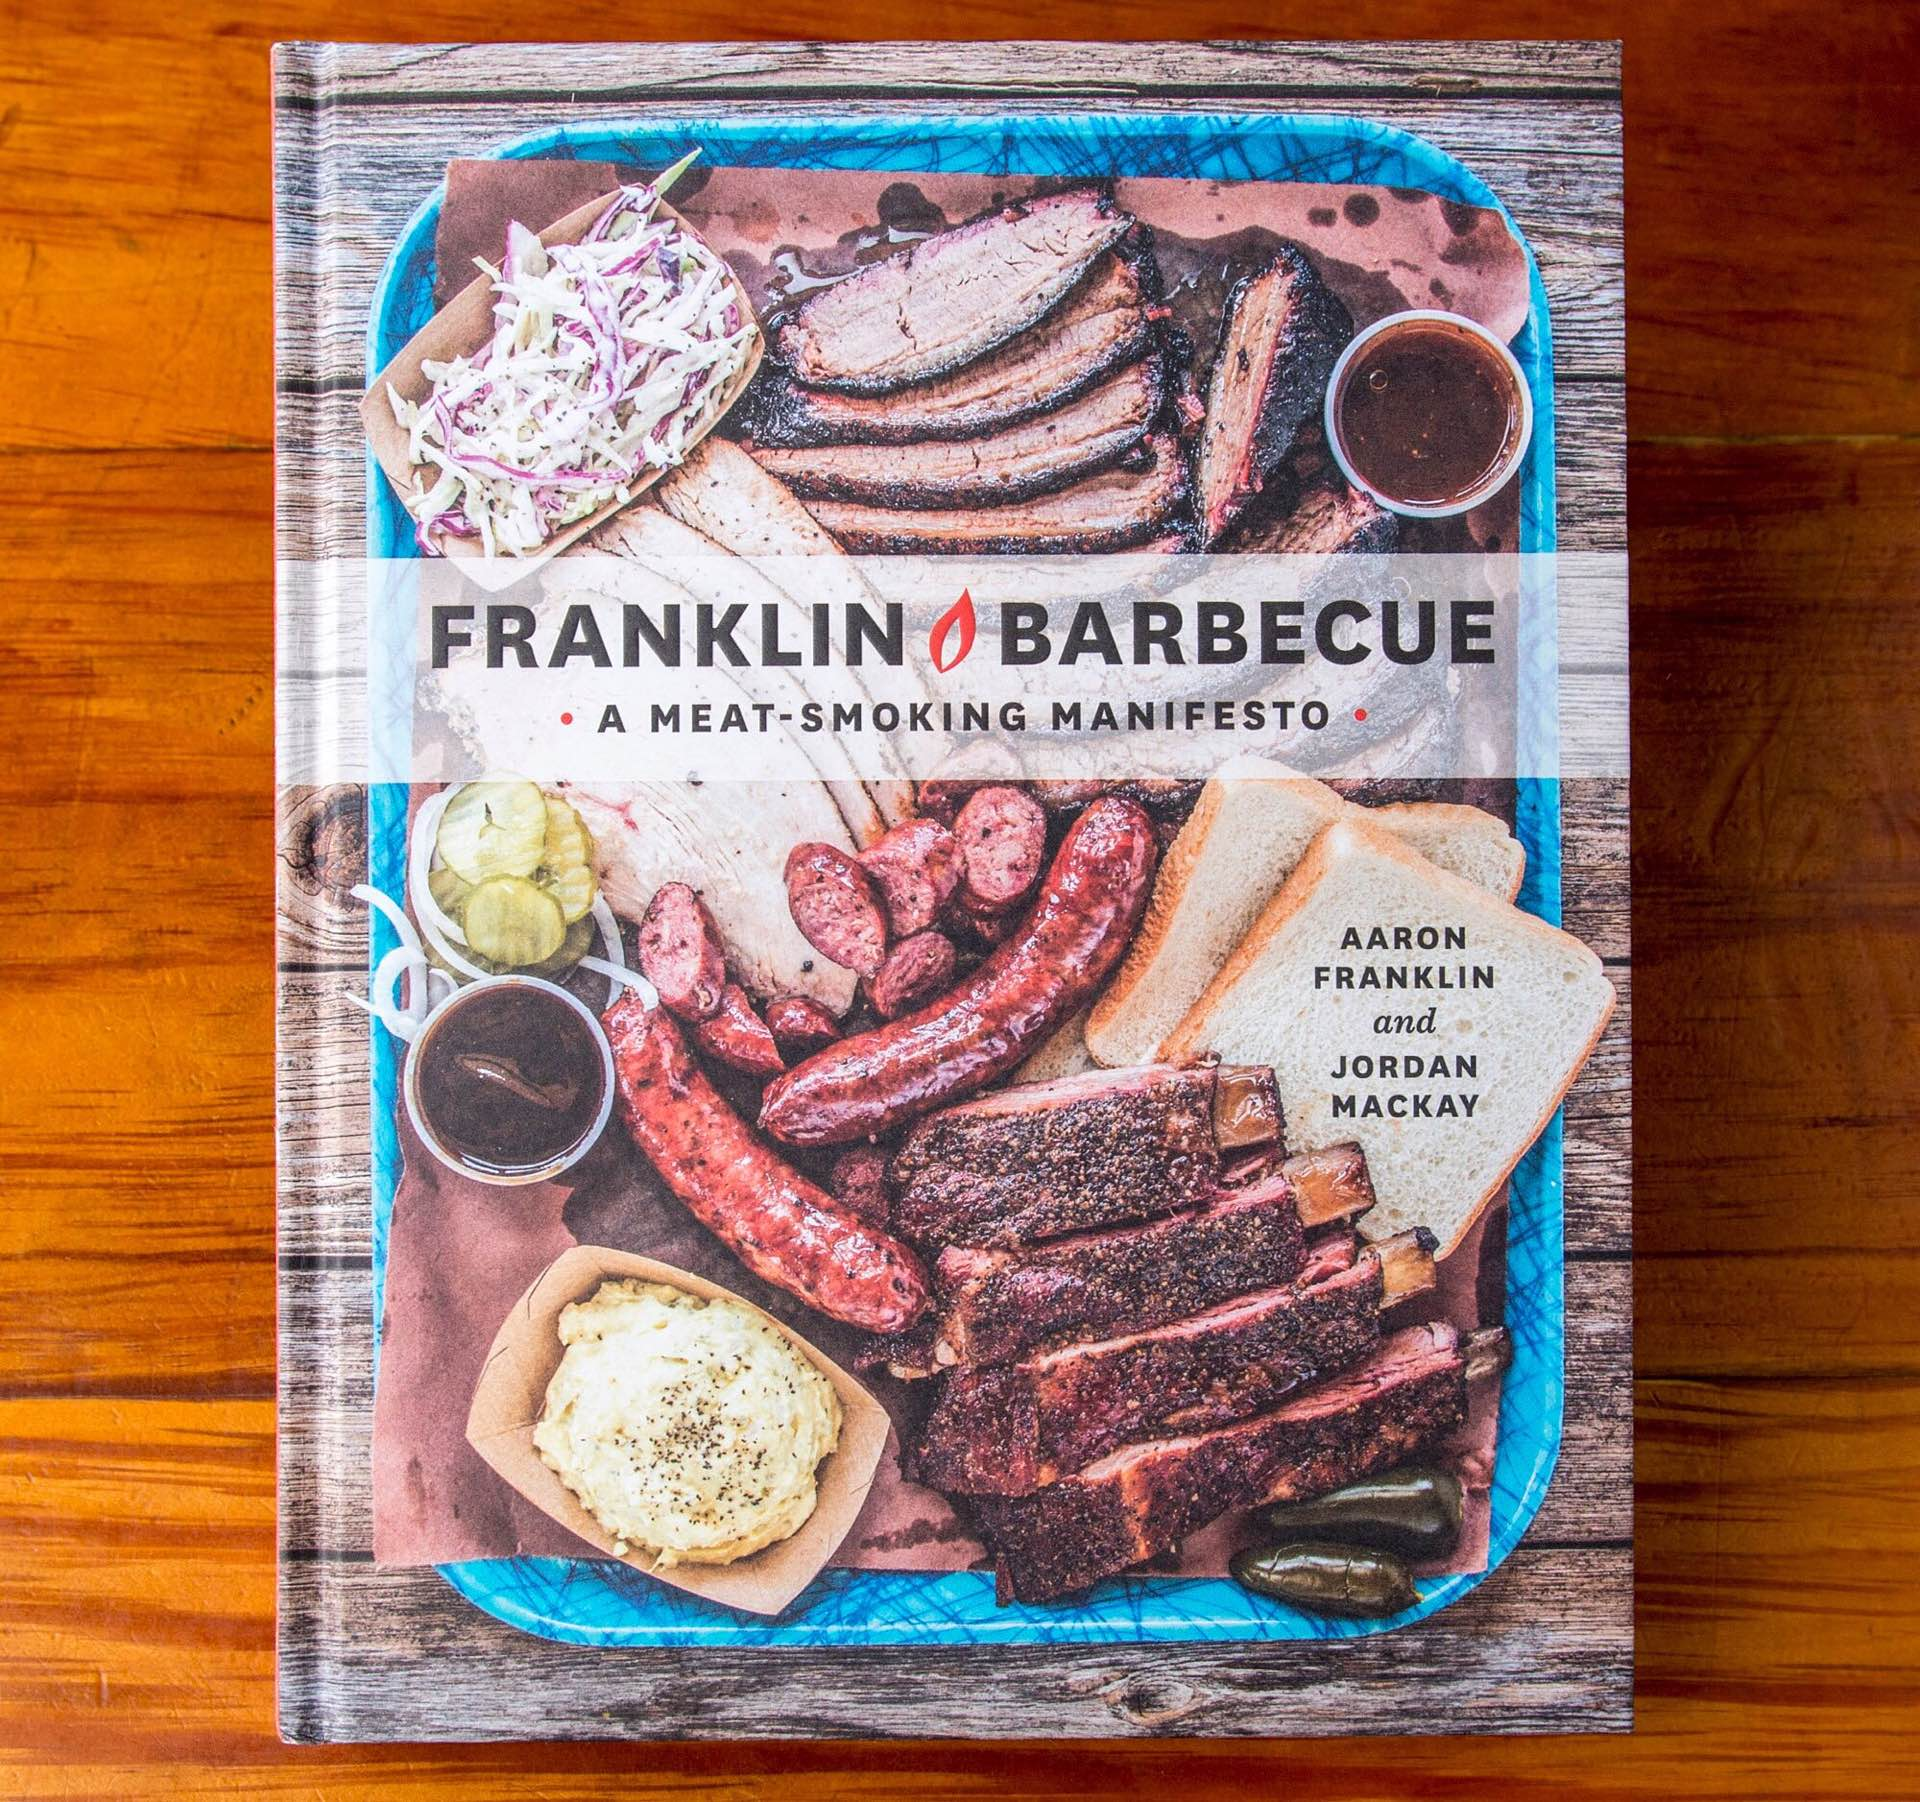 Franklin Barbecue: A Meat-Smoking Manifesto by Aaron Franklin and Jordan Mackay.